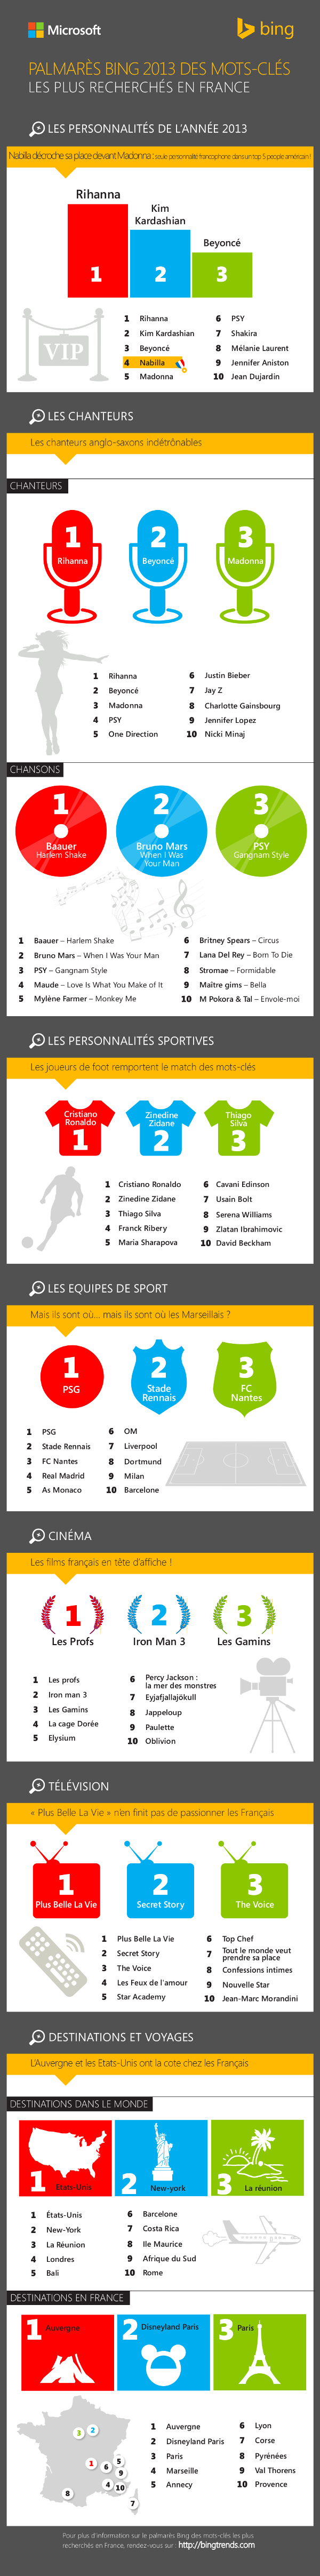 Bing-mots-cles-infographie